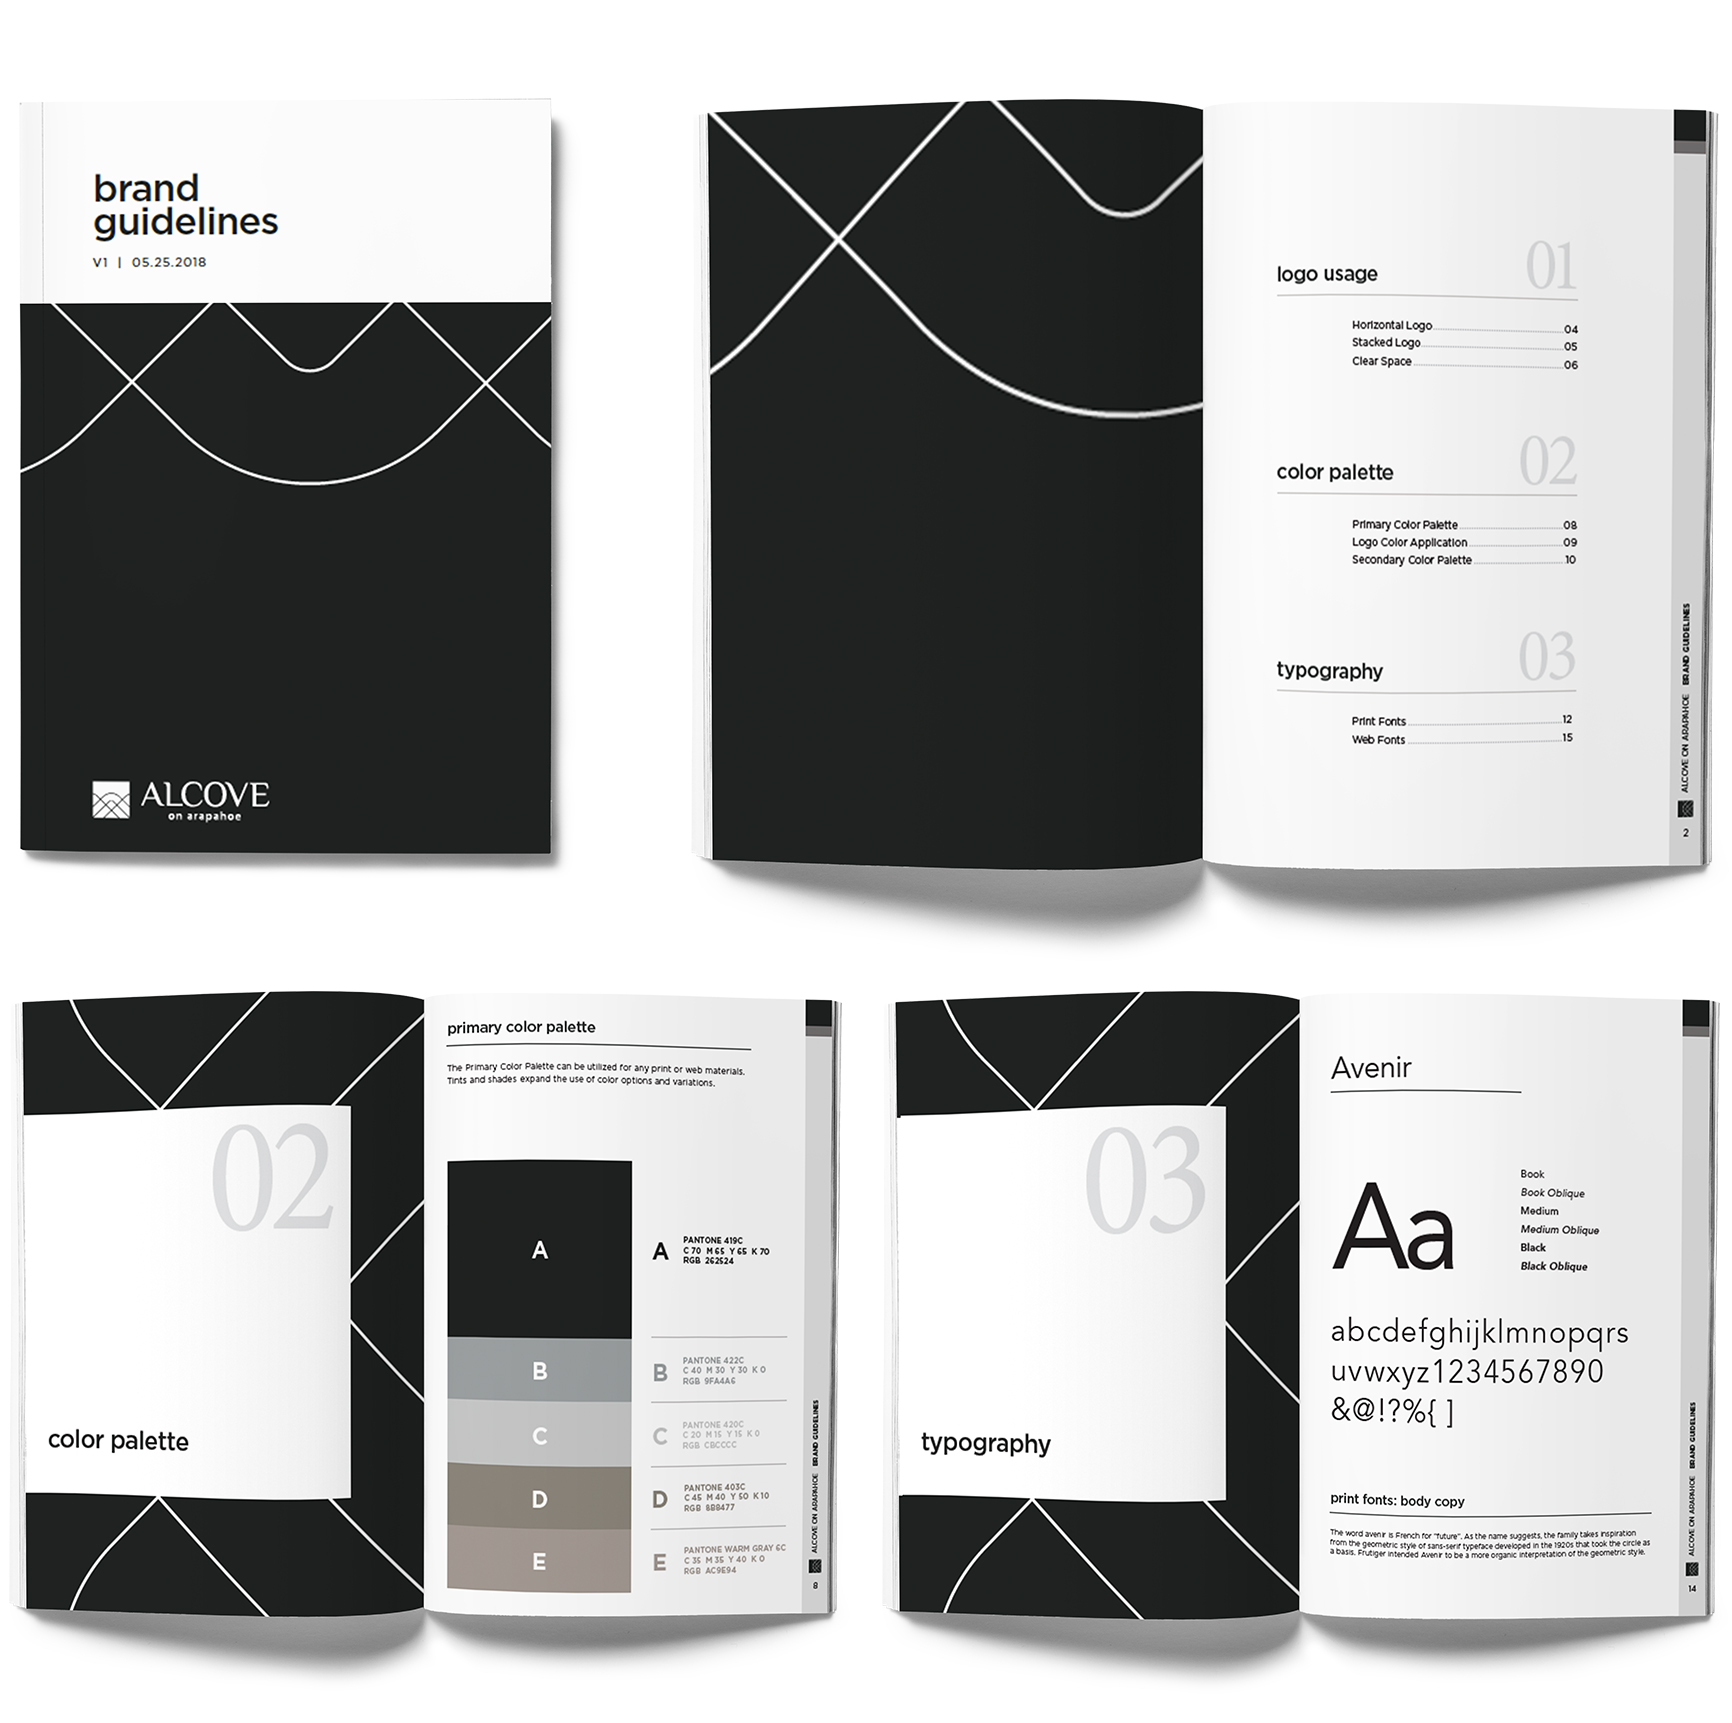 print examples of brand standards for alcove on arapahoe